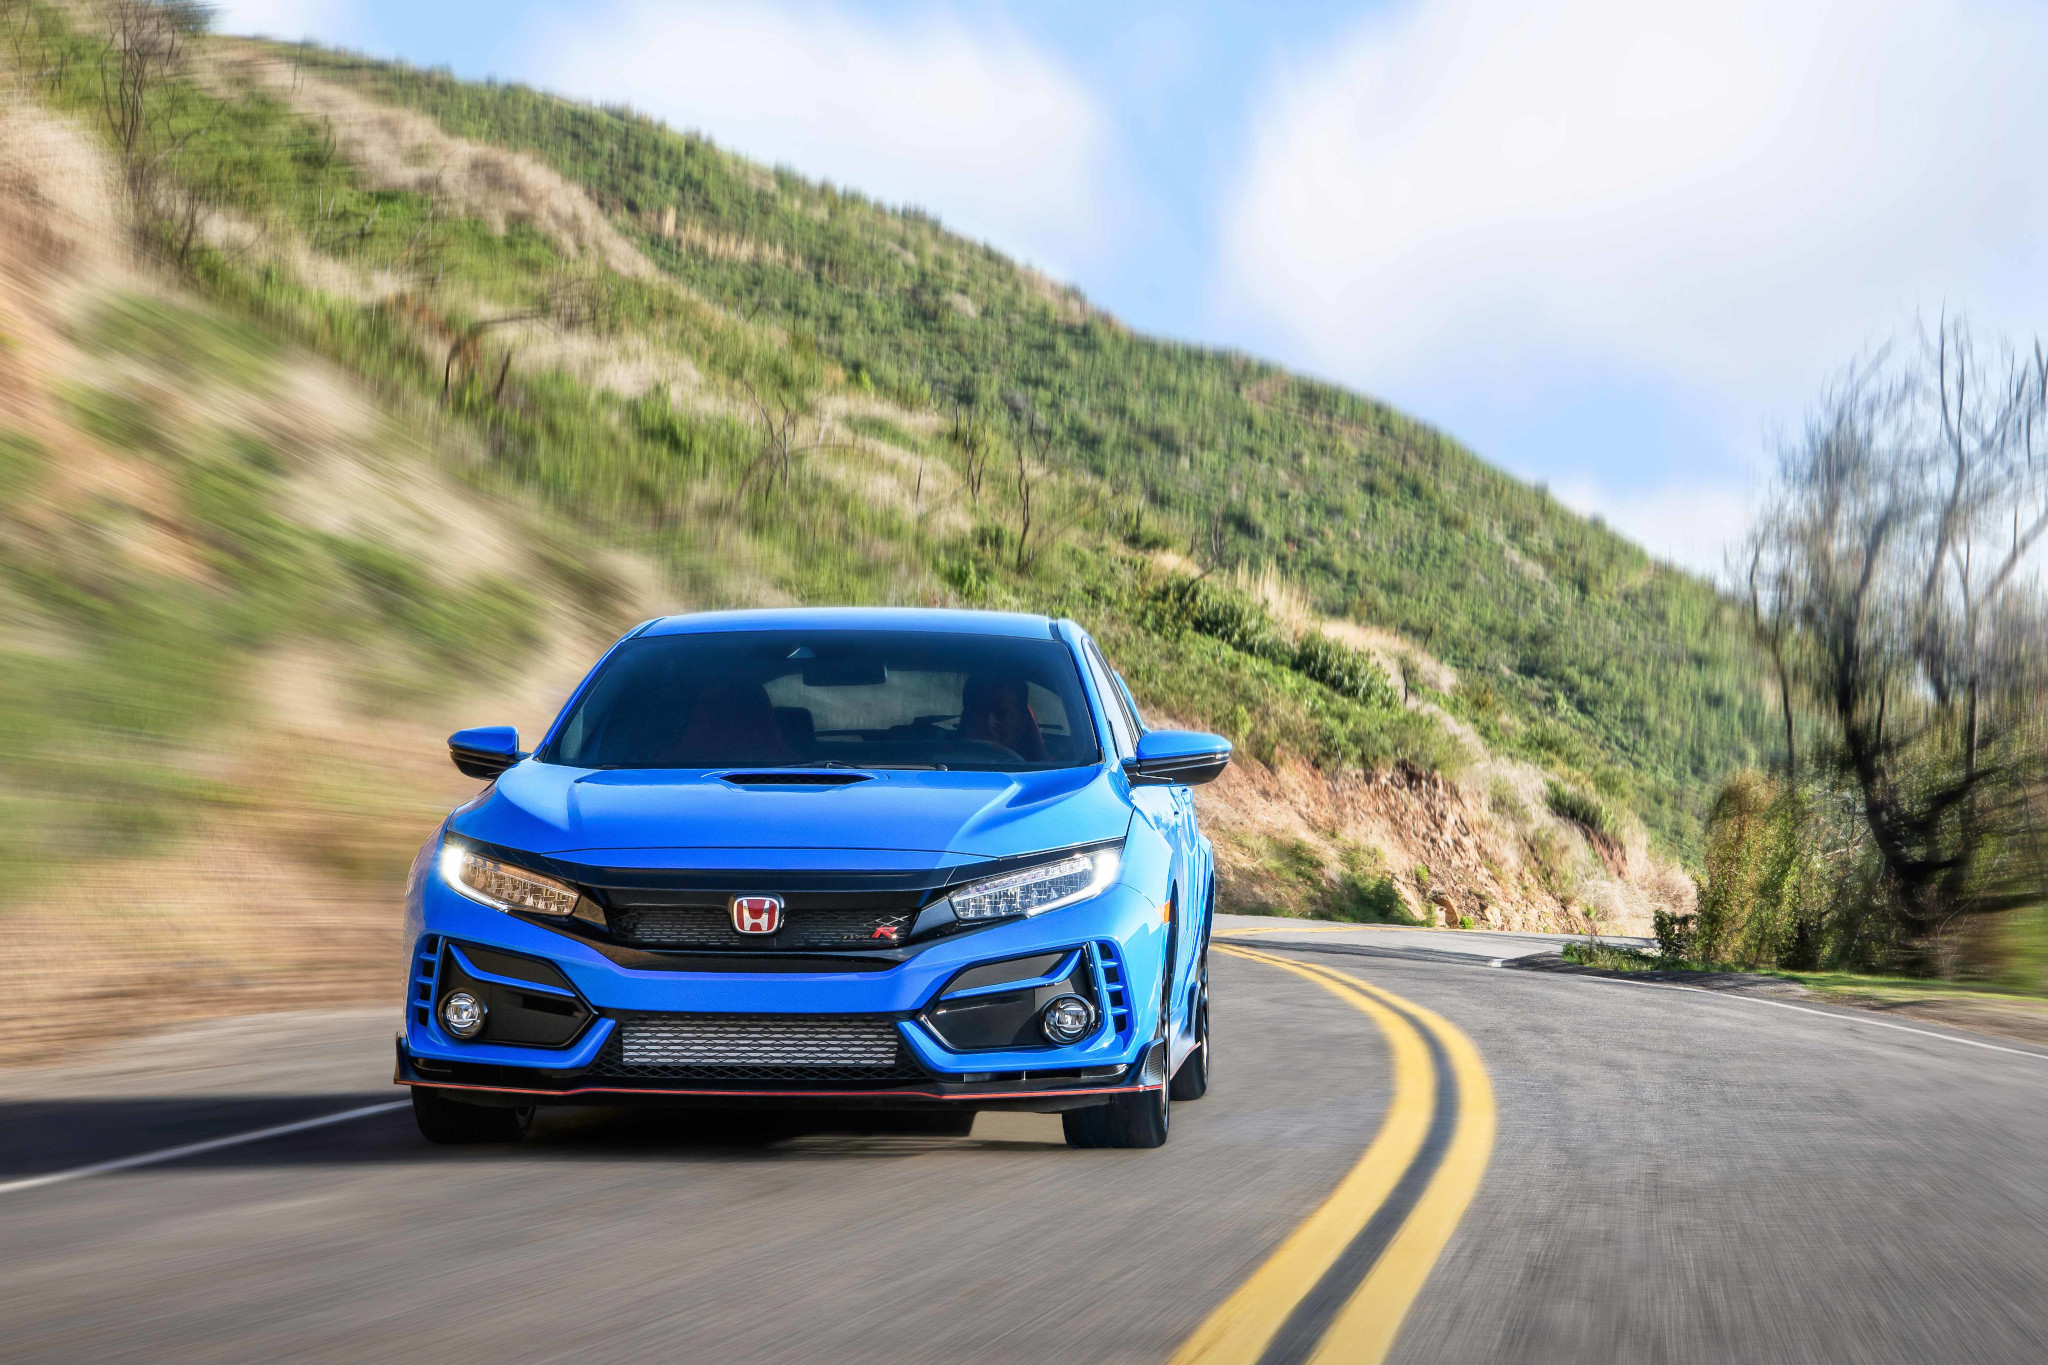 2020 Honda Civic Type R: Still the Wild Child of the Family